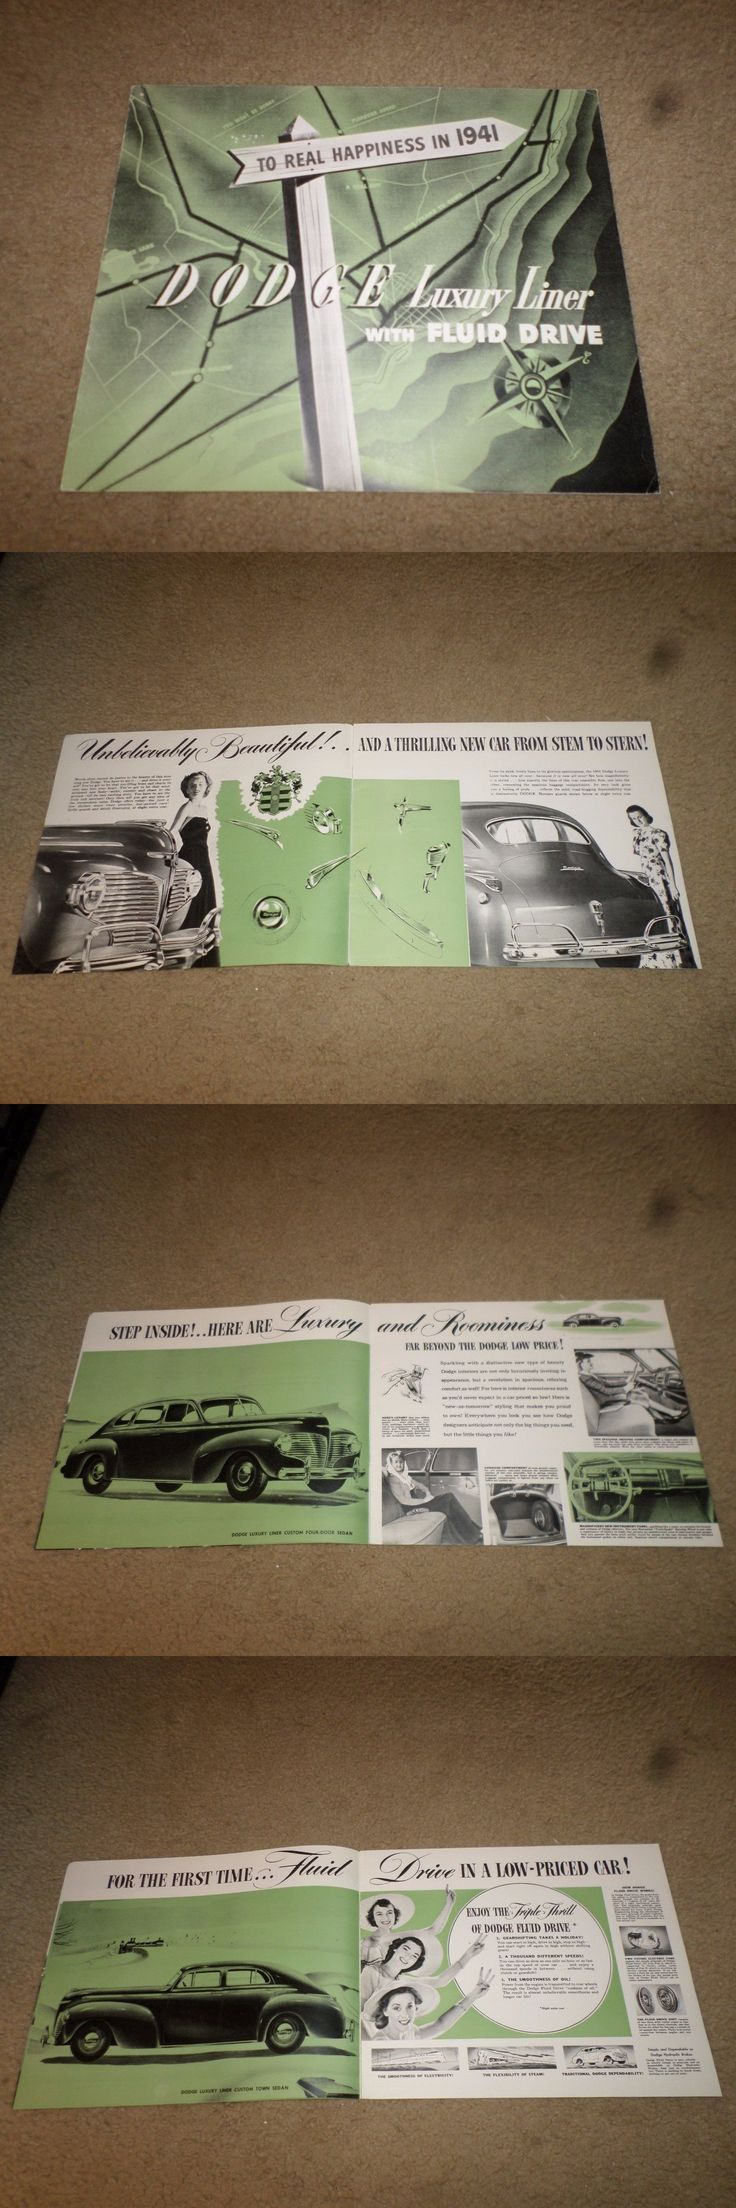 Luxury cars 1941 dodge luxury liner car dealer sales brochure buy it now